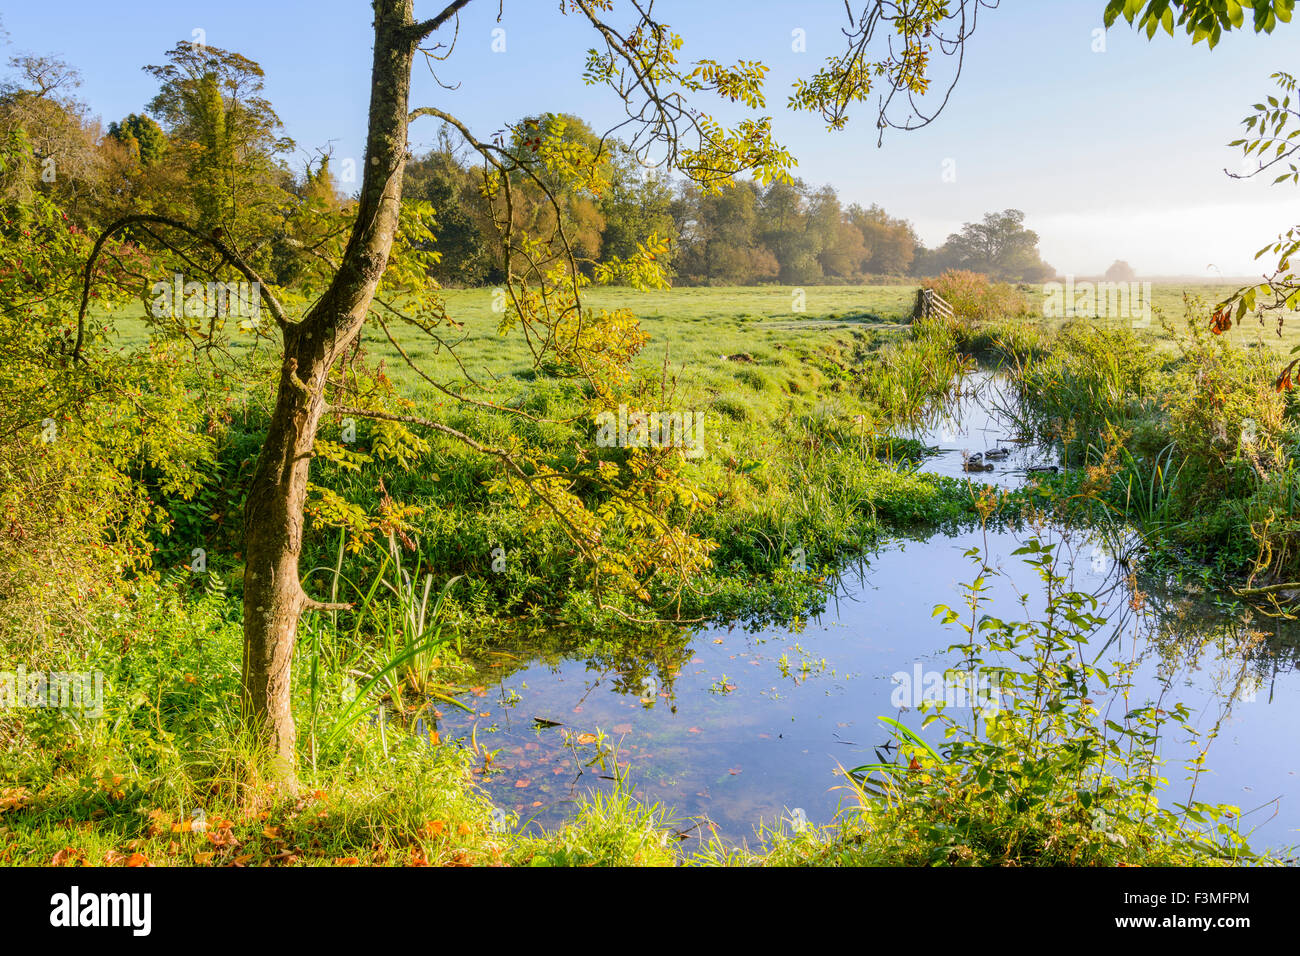 countryside-field-with-water-in-autumn-i